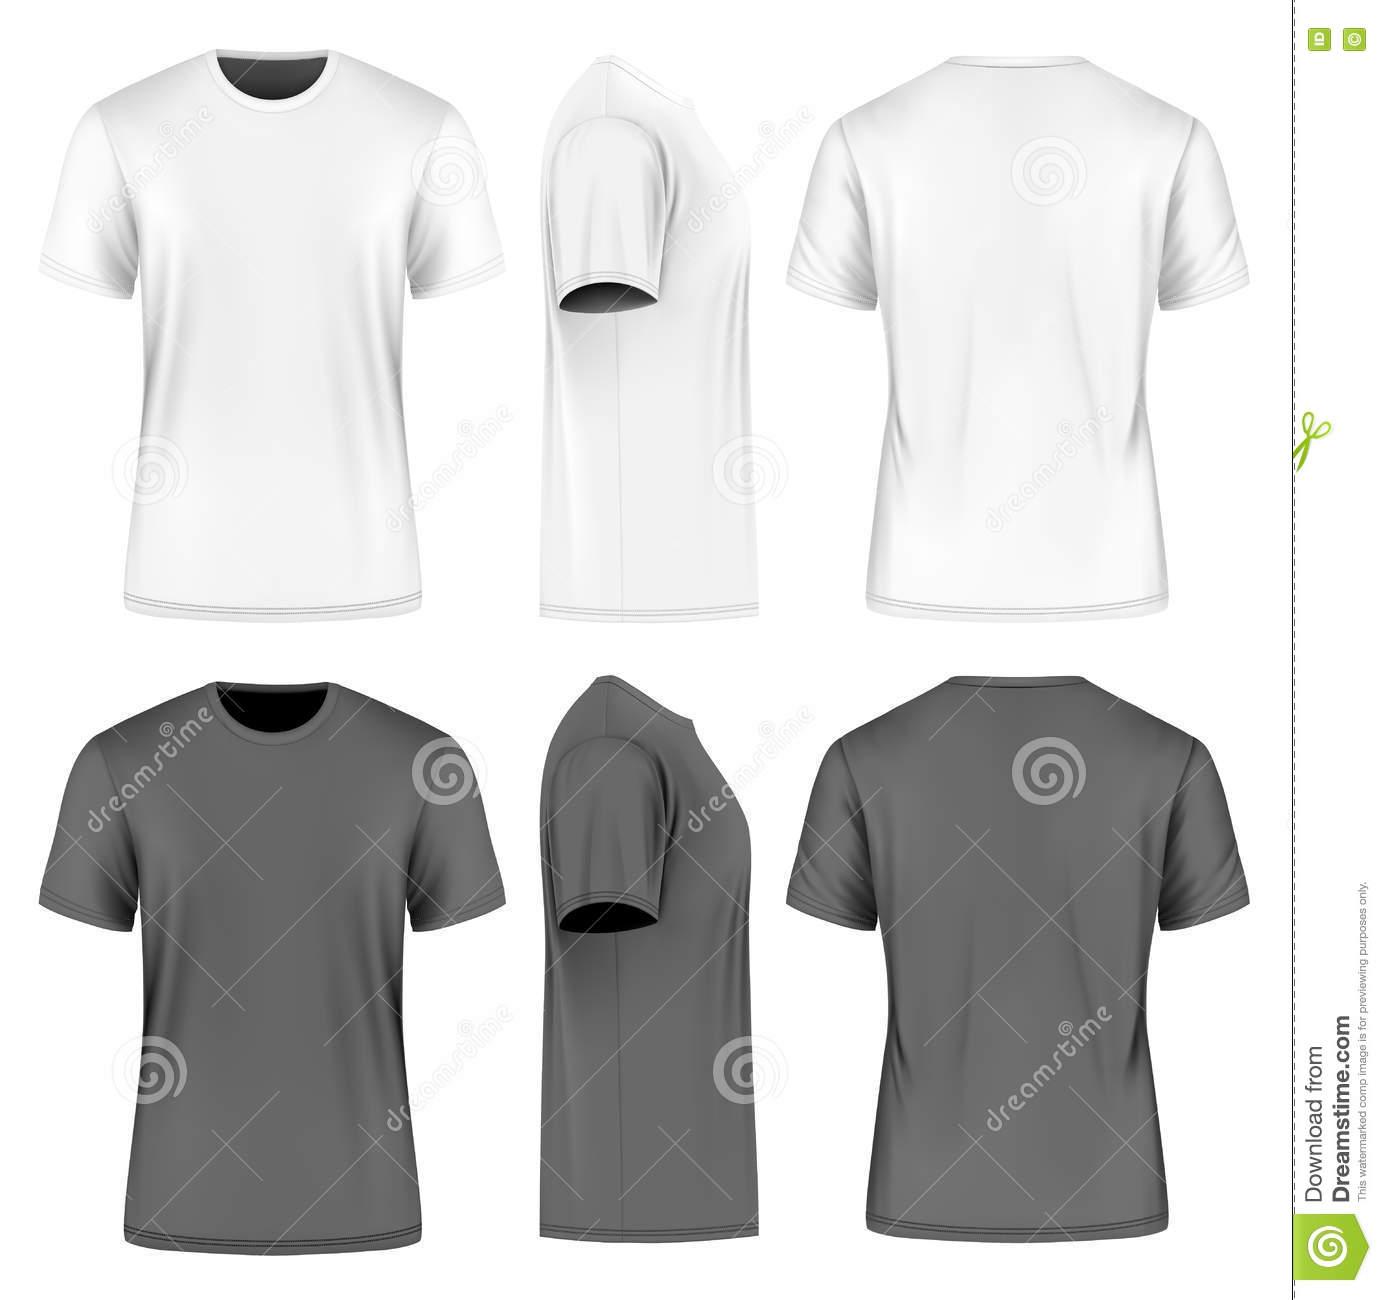 6f72dcd7b793 Men short sleeve round neck t-shirt. Front, side and back views. Vector  illustration. Fully editable handmade mesh. Black and white variants.